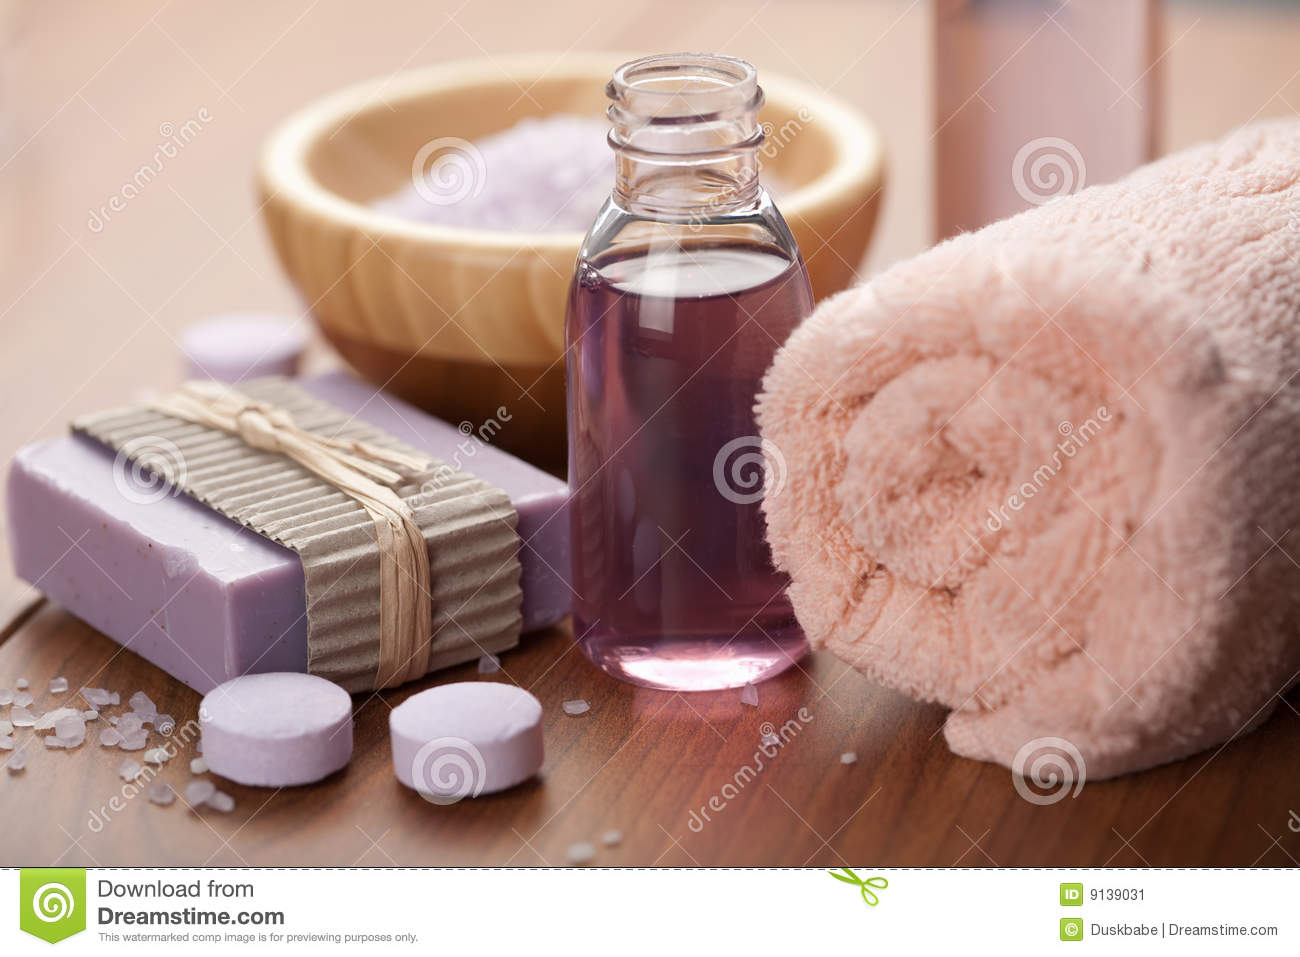 Essential oil and herbal soap. spa and body care